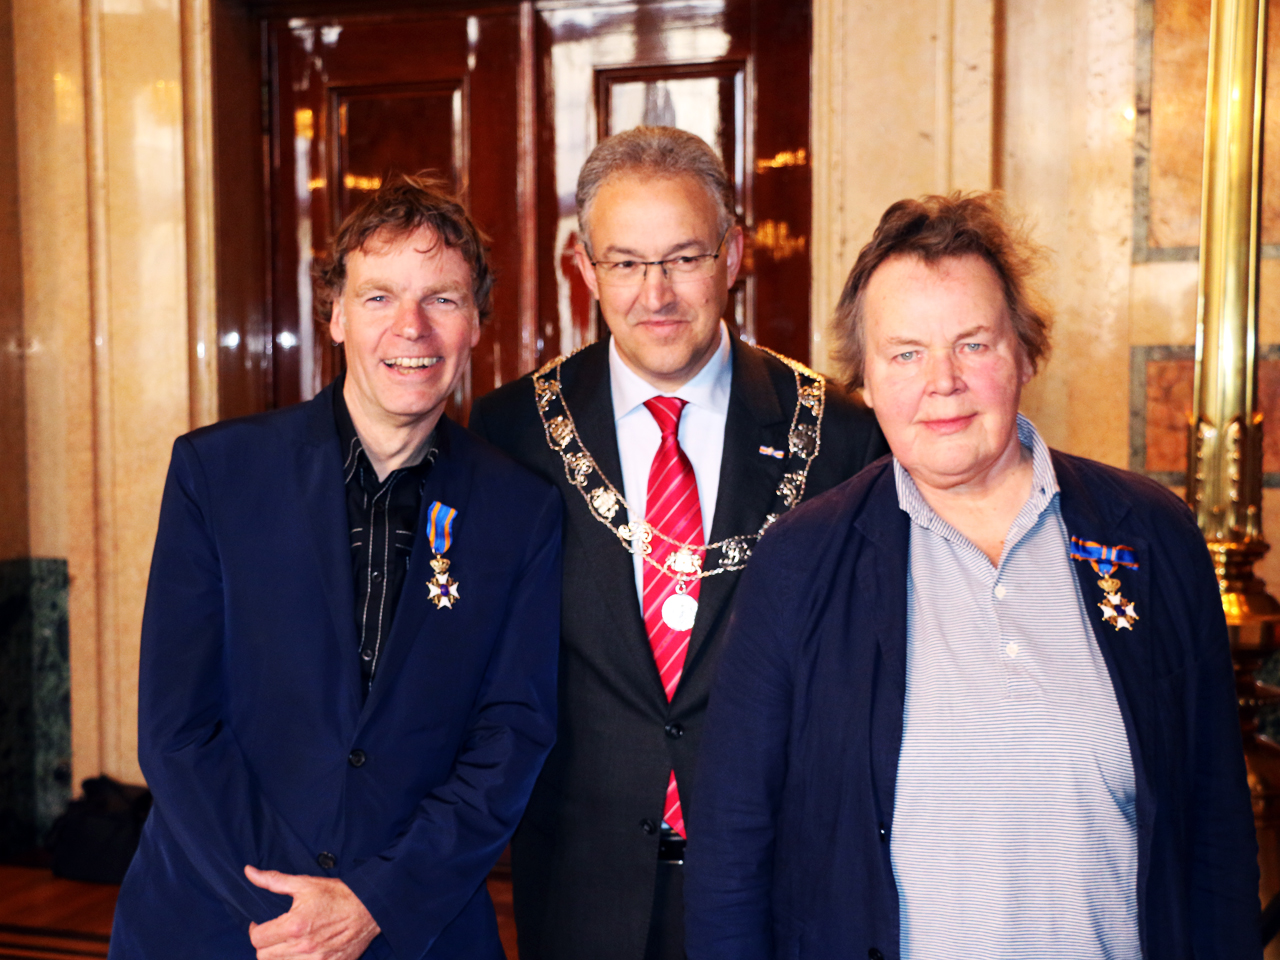 Winy Maas awarded Royal decoration of the Order of the Dutch Lion